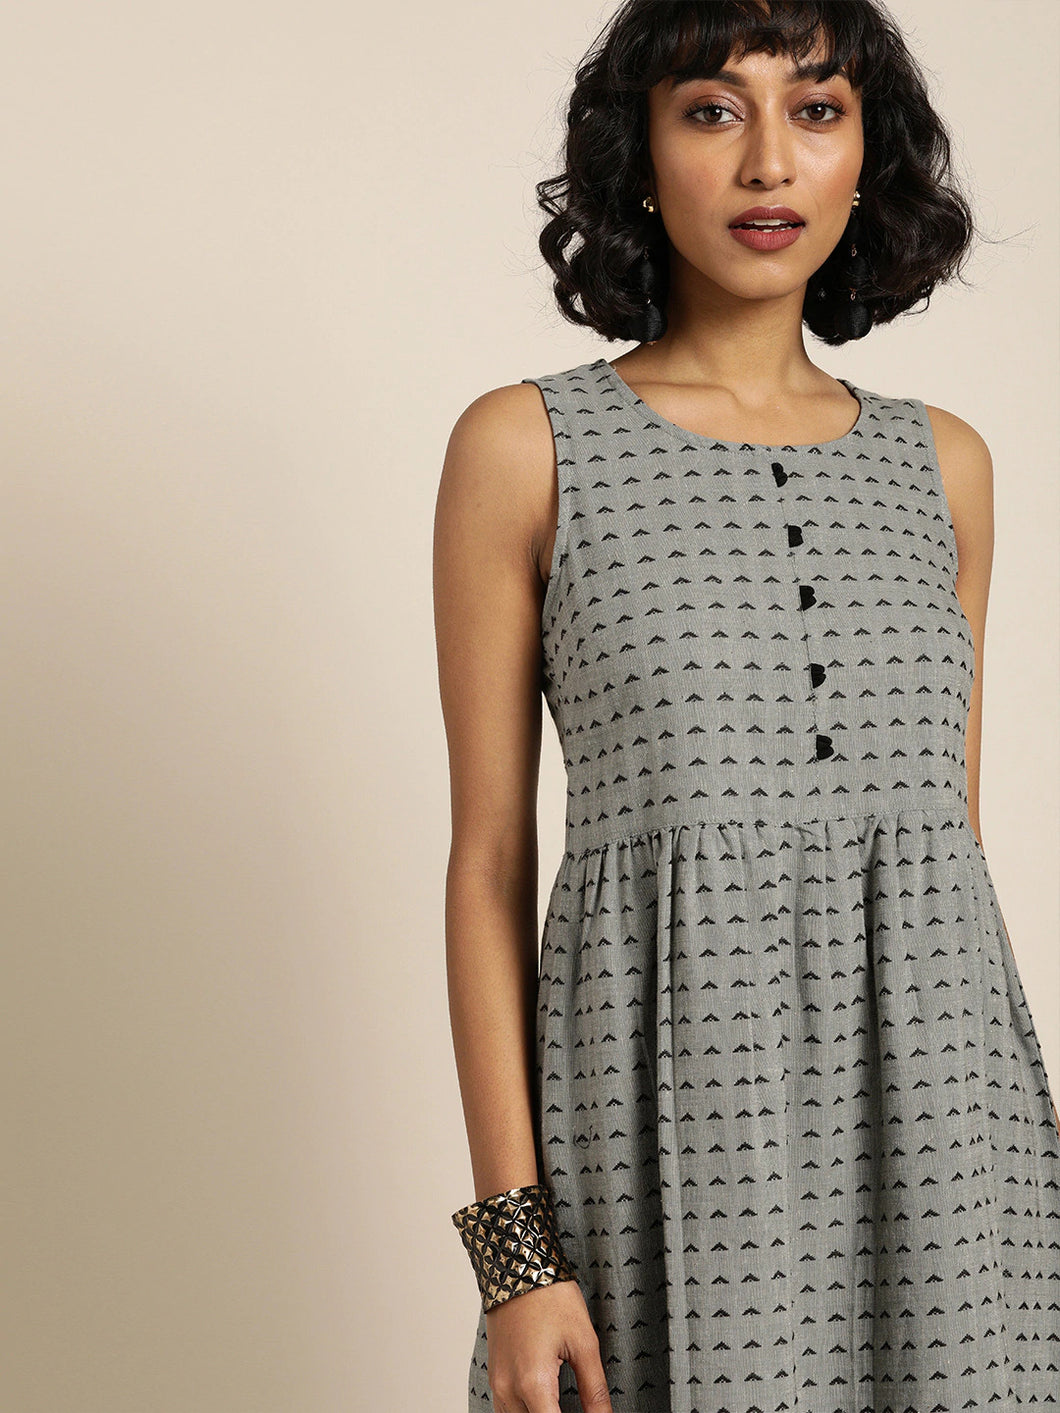 Queen ellie Women Grey & Black Self Design Woven Legacy A-Line Midi Dress with Gathers